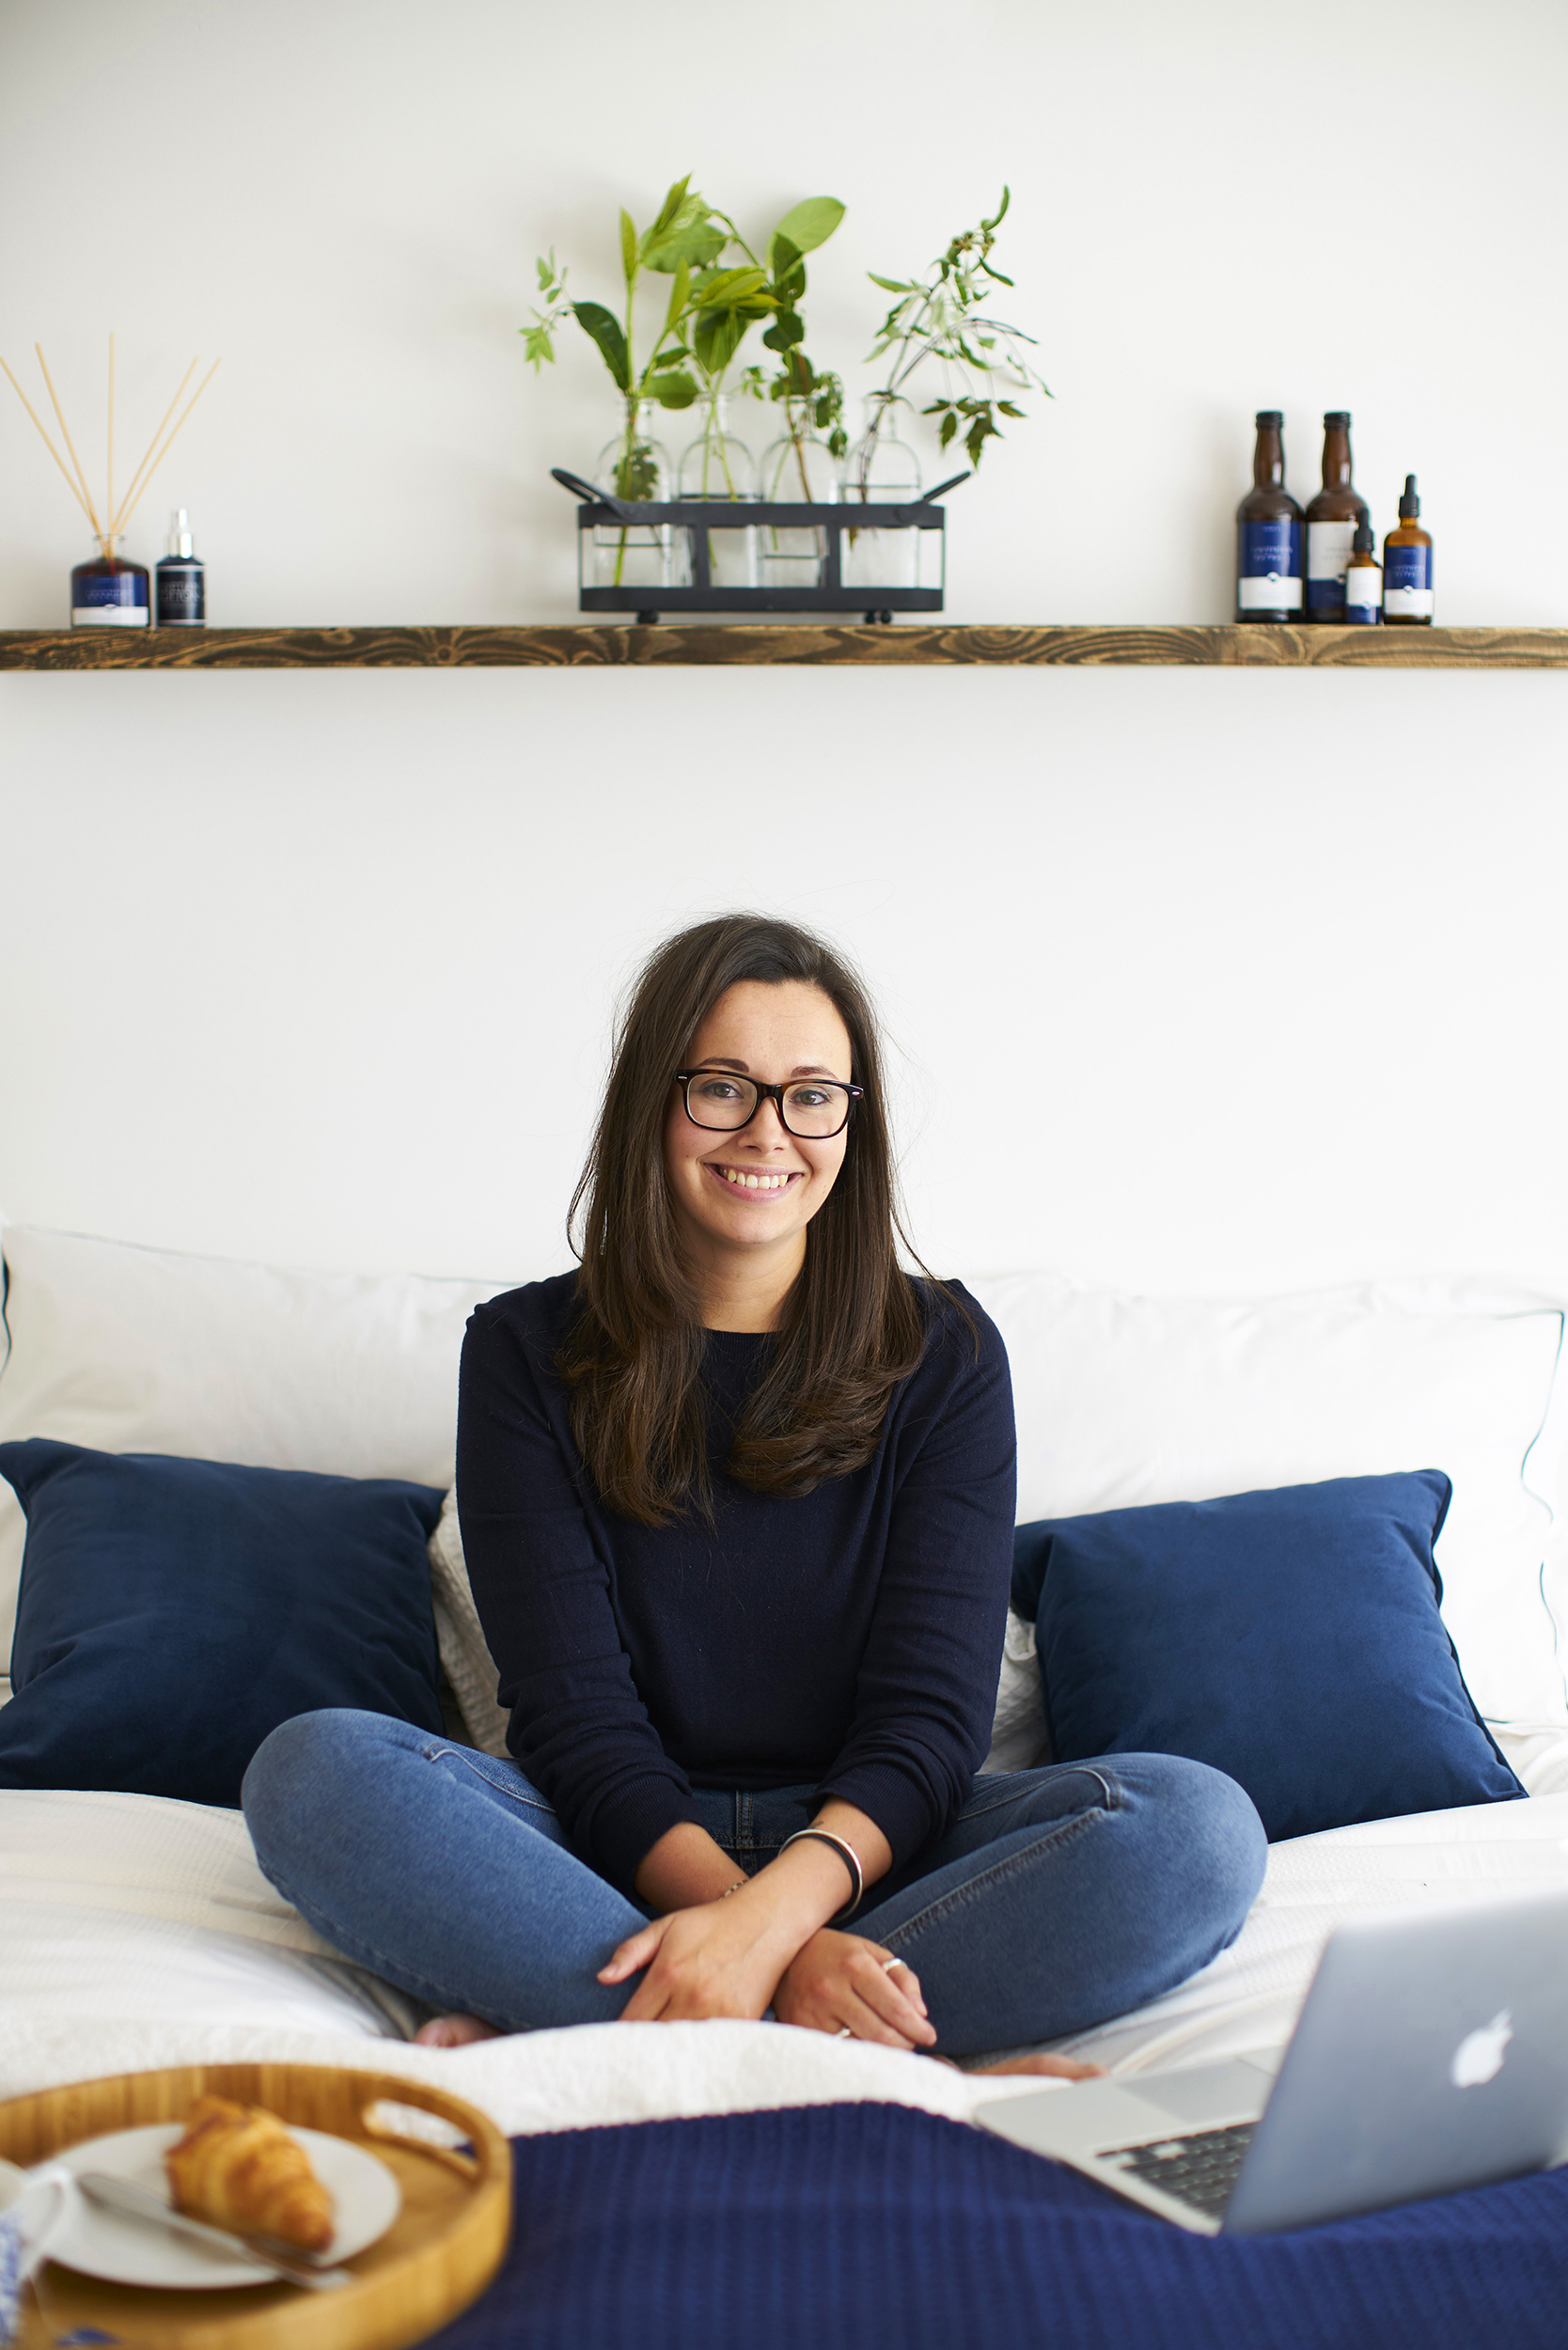 Amy Paris, founder of the London Sleep Company, photographed in Colchester, Essex, 9 May 2018. Photo by Adam Gasson / adamgasson.com